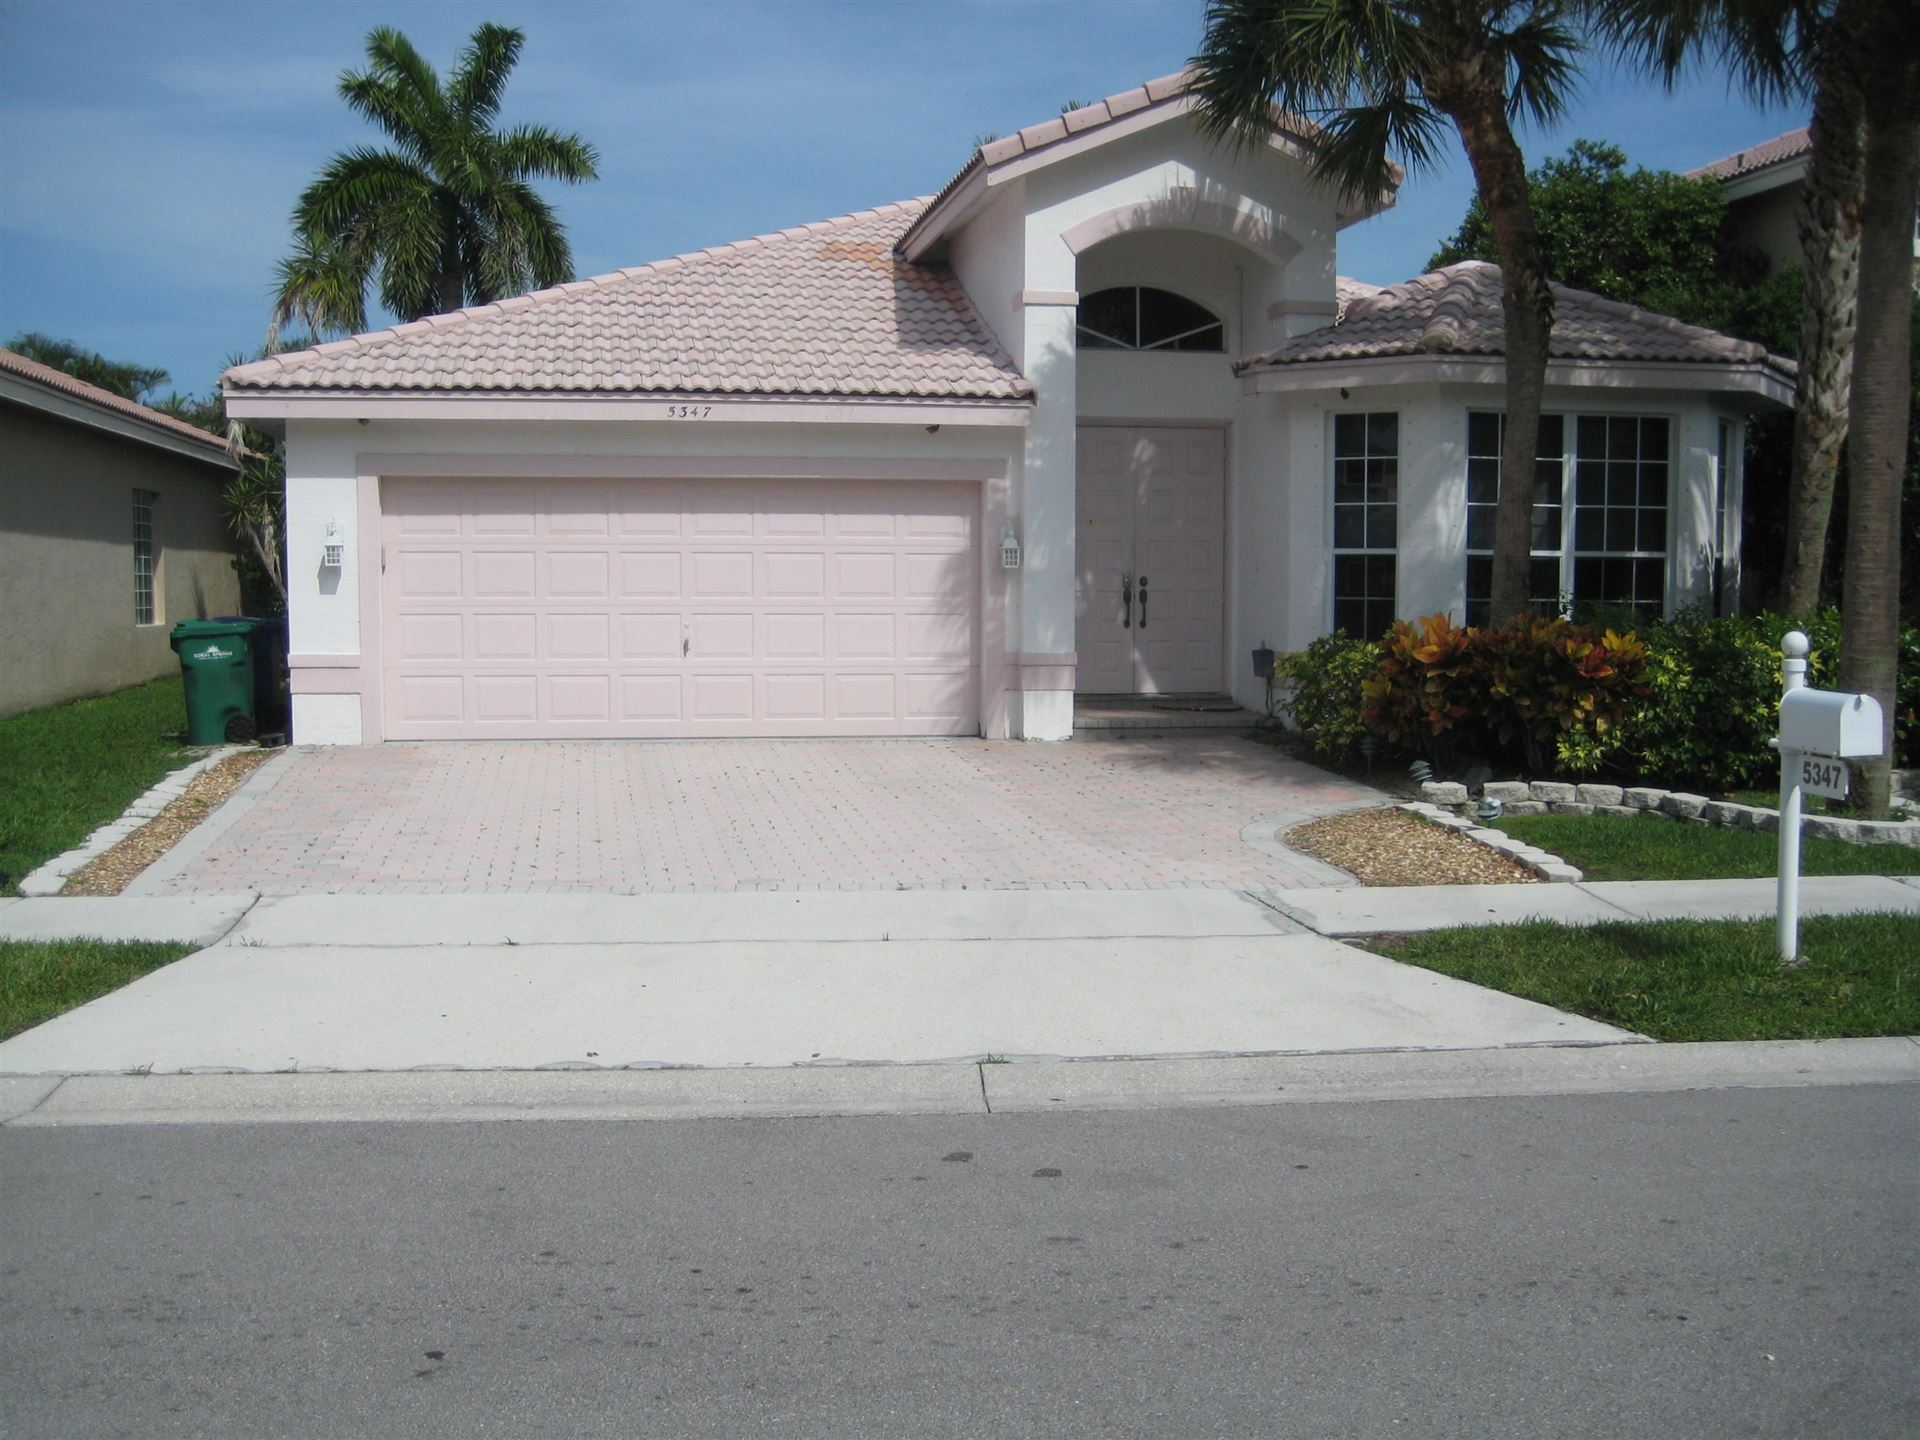 5347 NW 119th Terrace #100, Coral Springs, FL 33076 - #: RX-10627367